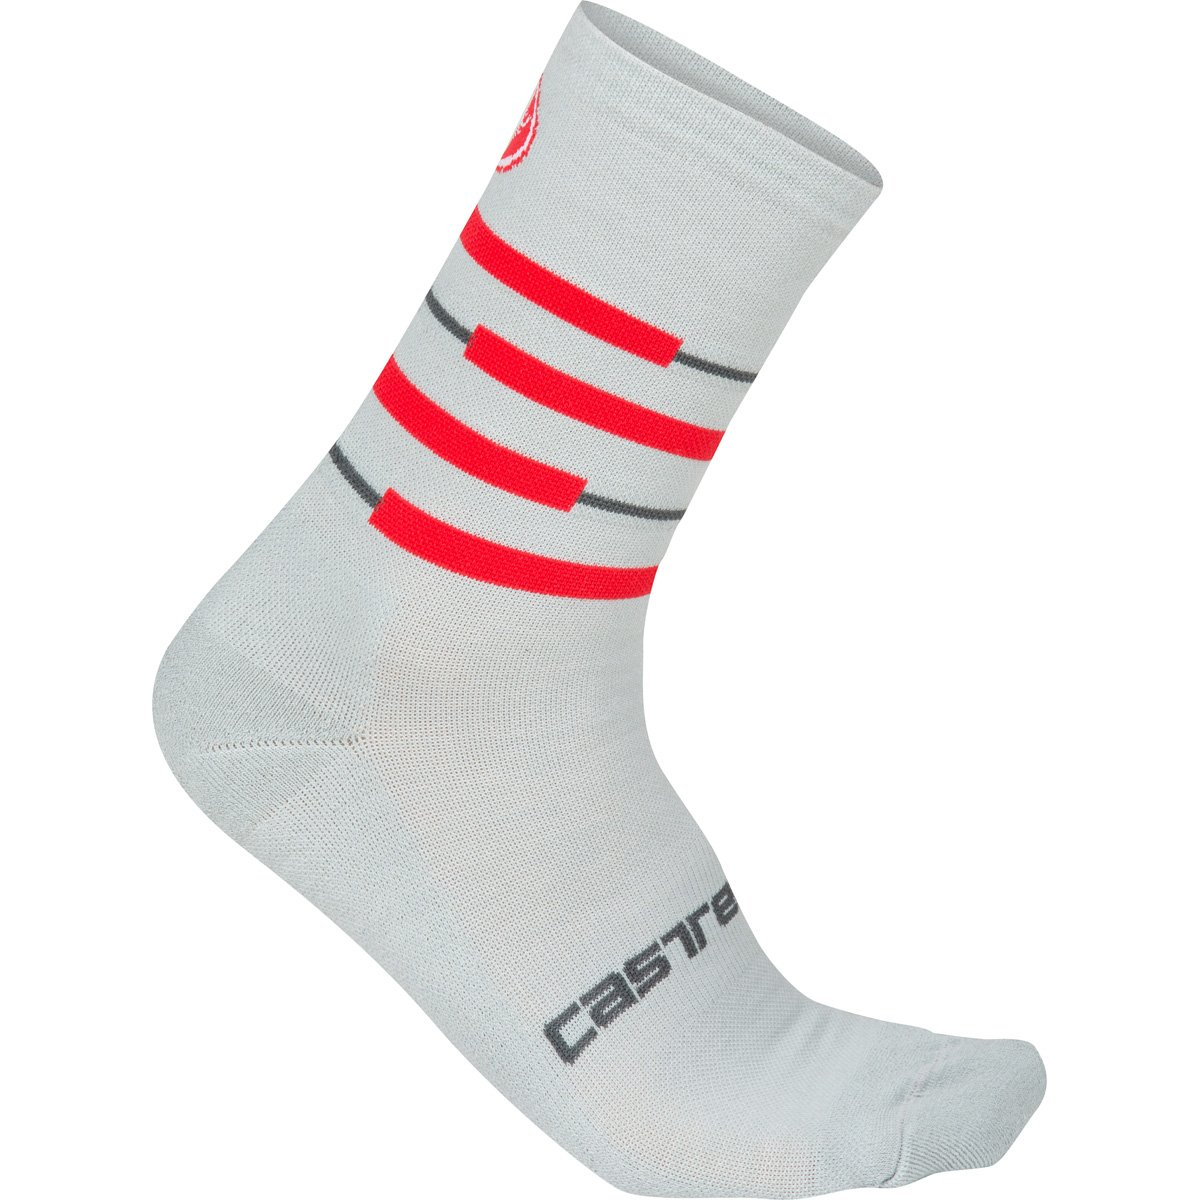 Amazon.com : Castelli 2016/17 Incendio 15 Cycling Sock - R16570 : Sports & Outdoors